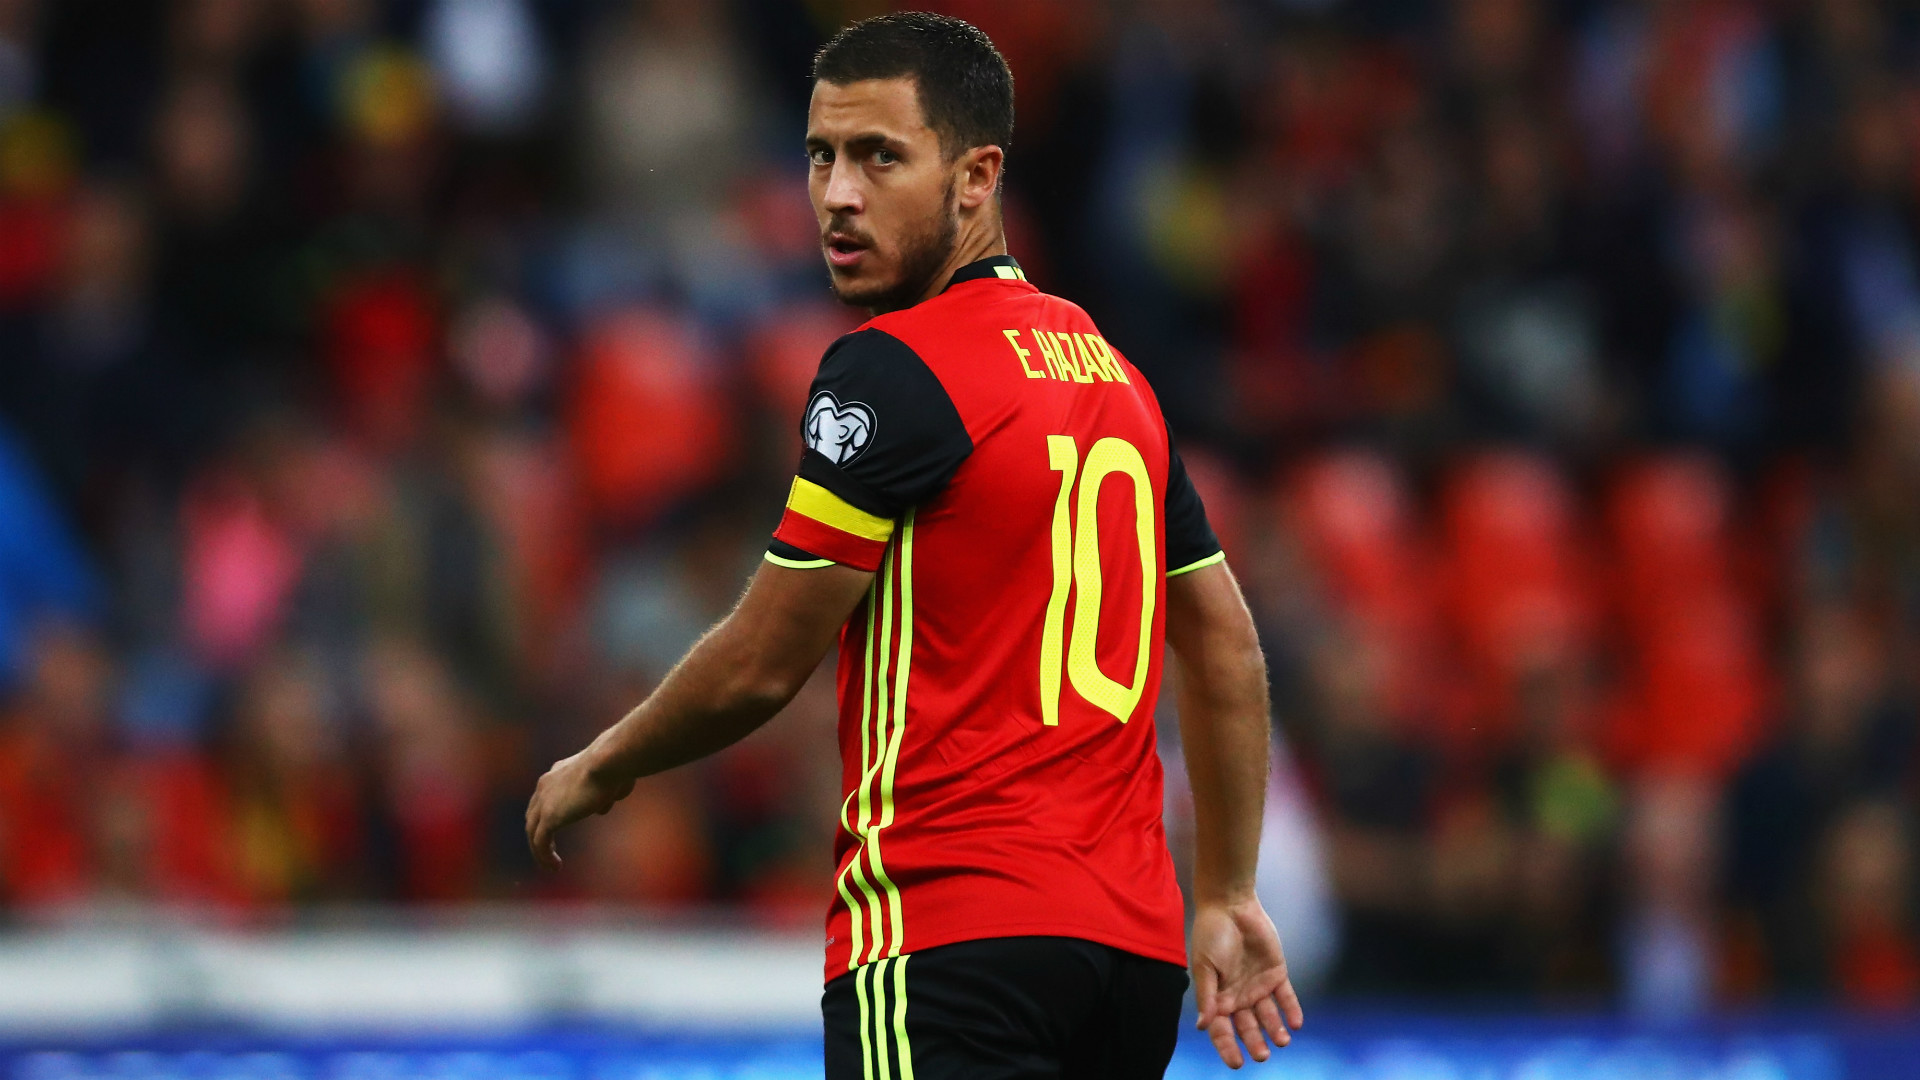 79ea2e176fe He plays for both the Belgian national football team as well as the English  premier league side